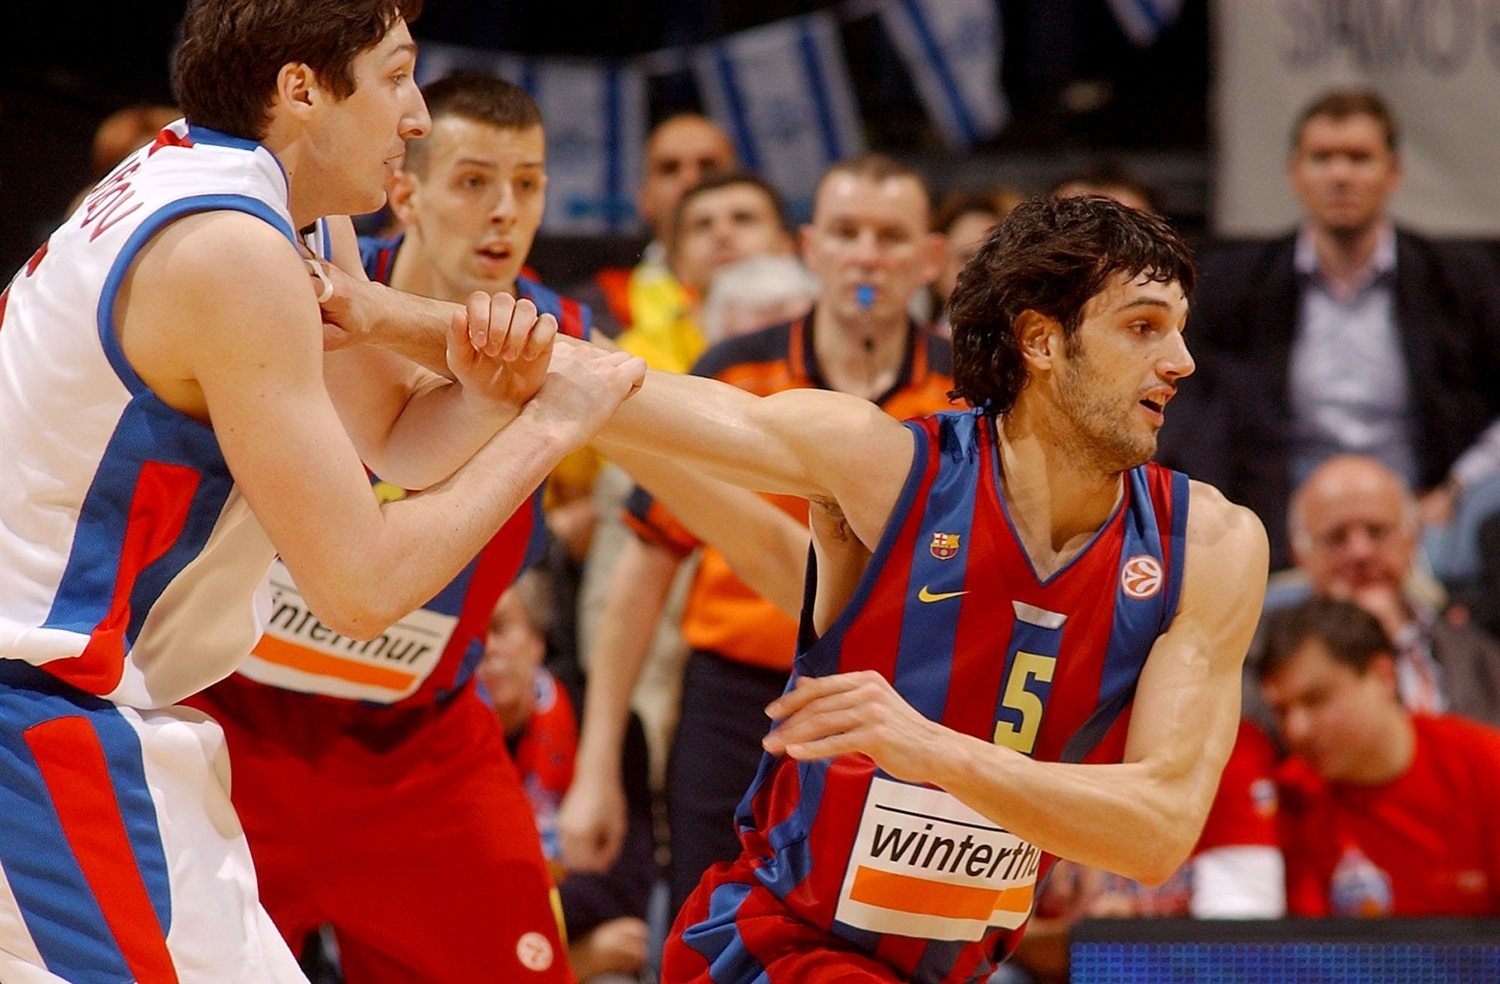 Gianluca Basile - FC Barcelona - Final Four Prague 2006 - EB05